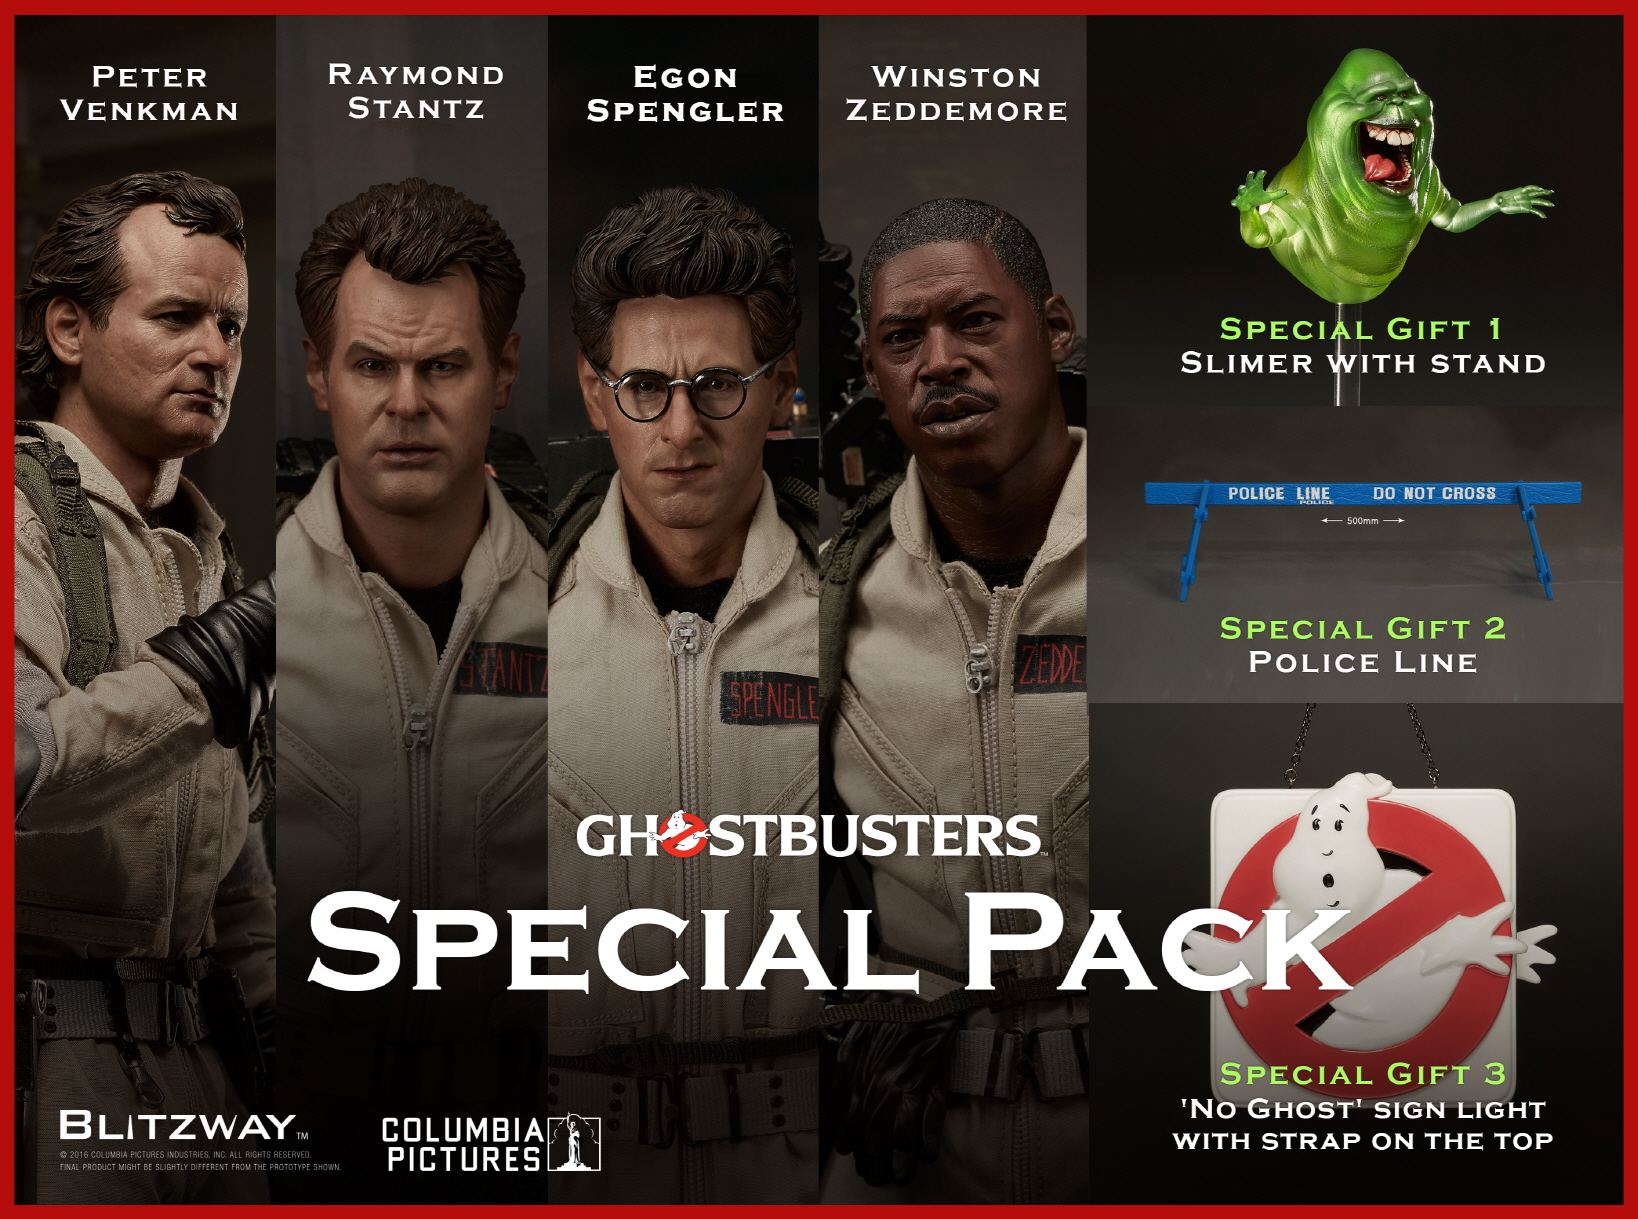 Blitzway BW-UMS10106 1/6 Ghostbusters 1984 - Special Pack